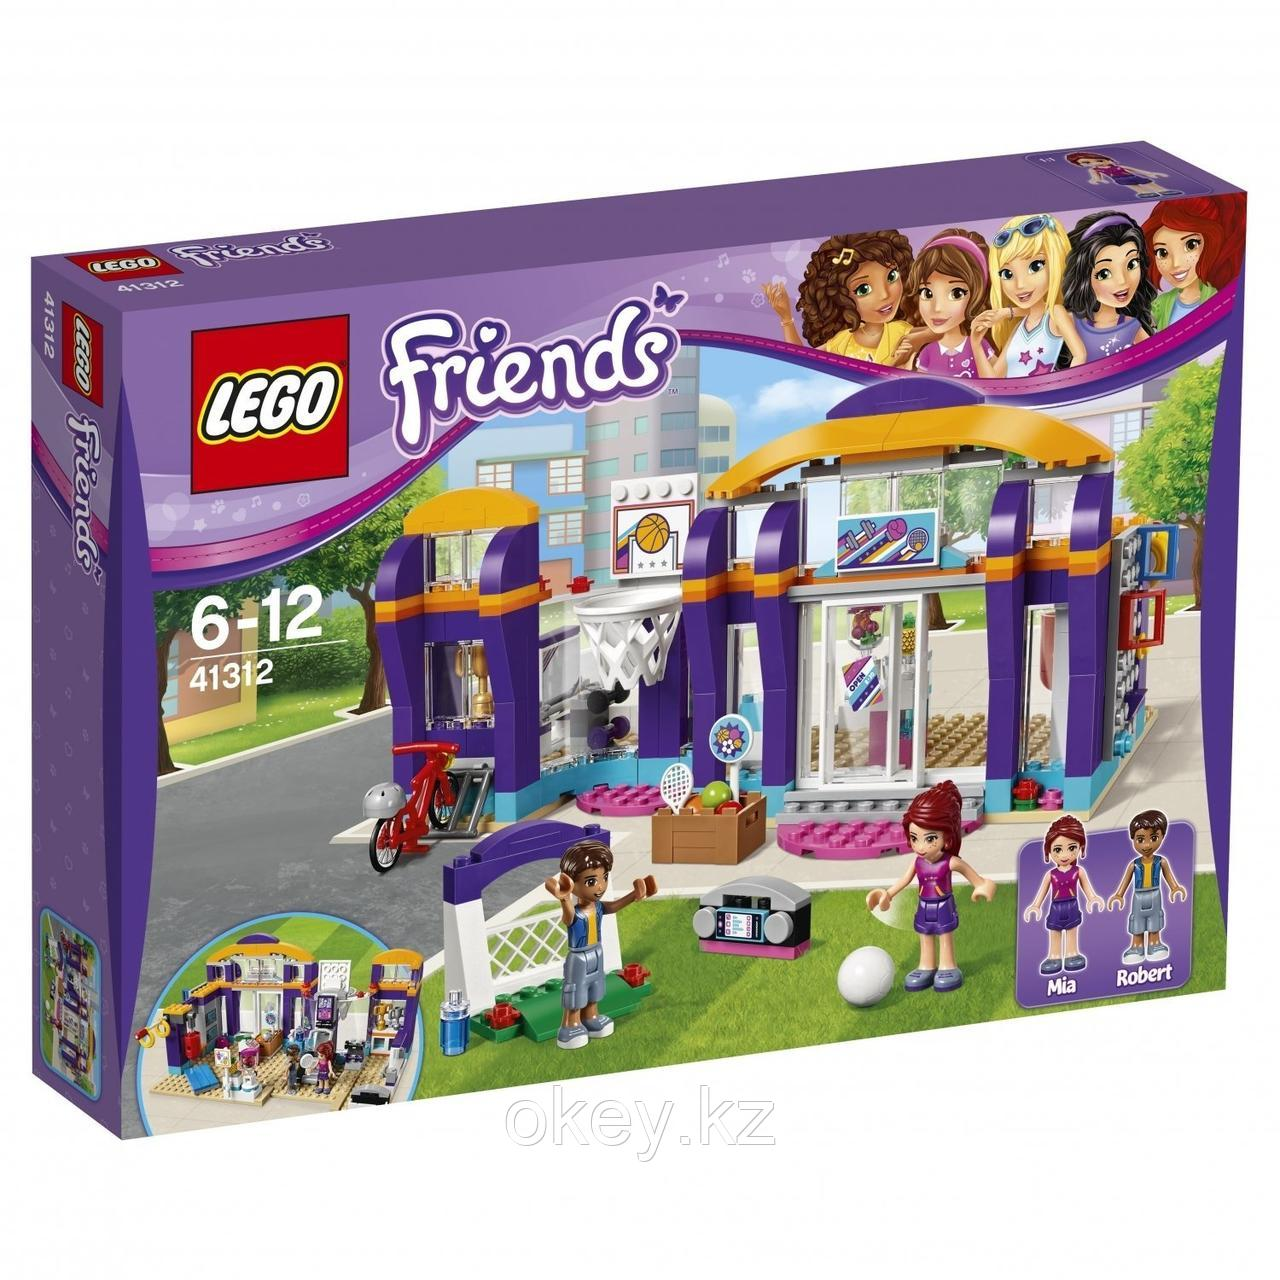 LEGO Friends: Спортивный центр 41312